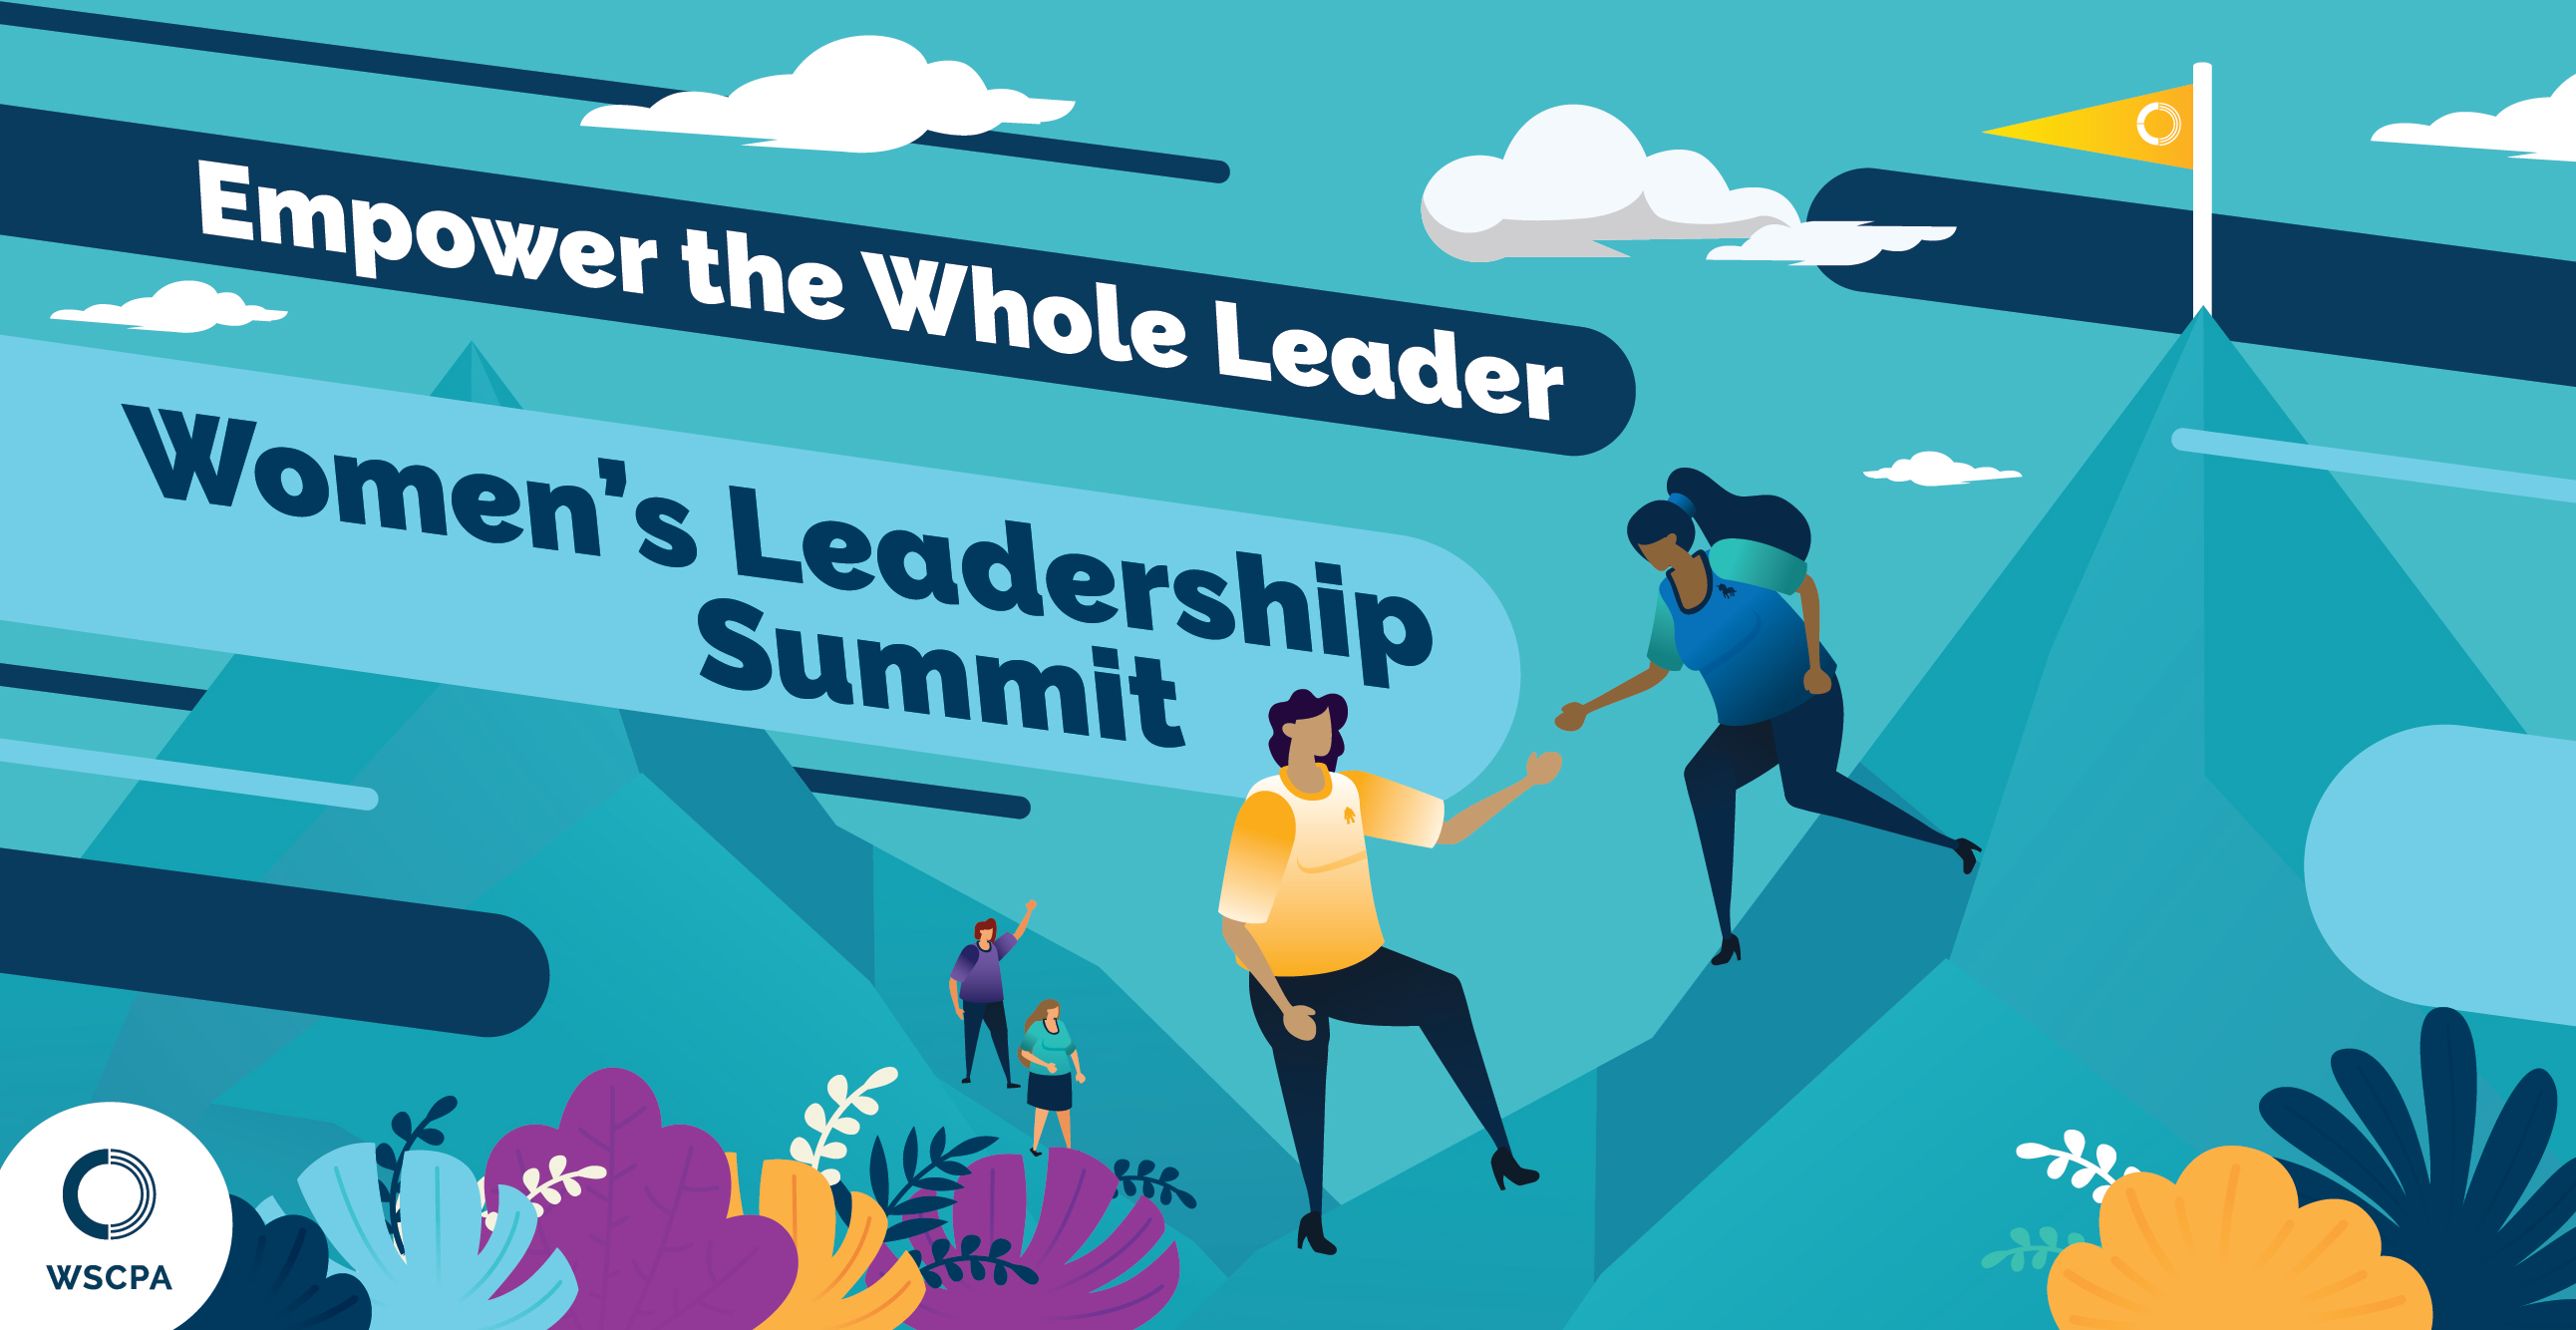 WLS, empower the whole leader